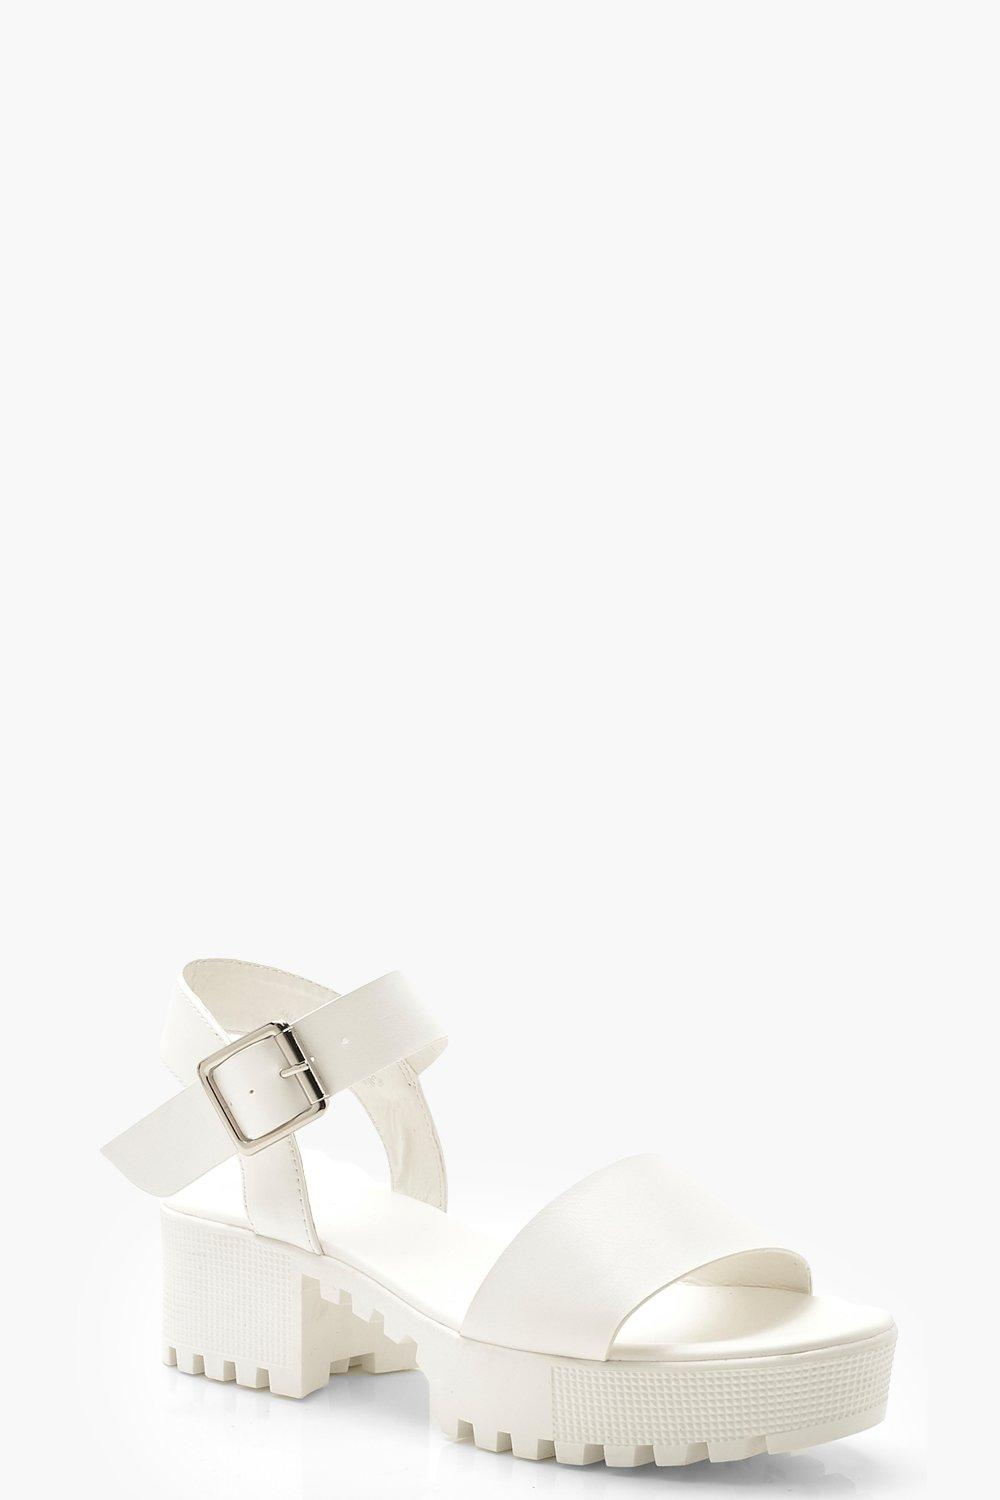 Cleated 2 Part Sandals | boohoo | Women